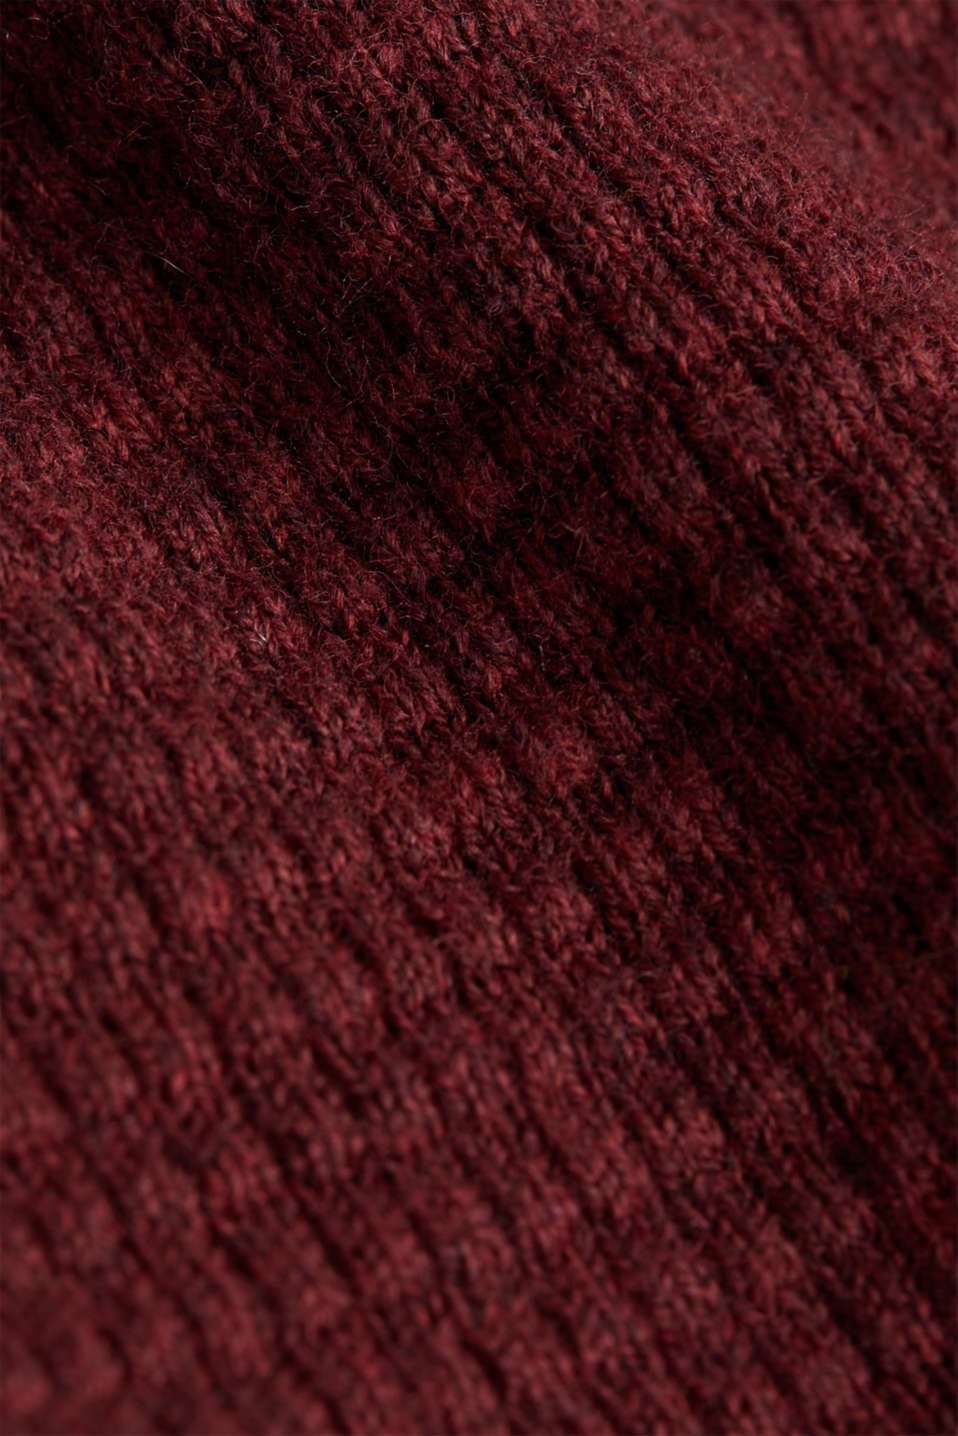 With cashmere: Textured knit jumper, DARK RED, detail image number 4